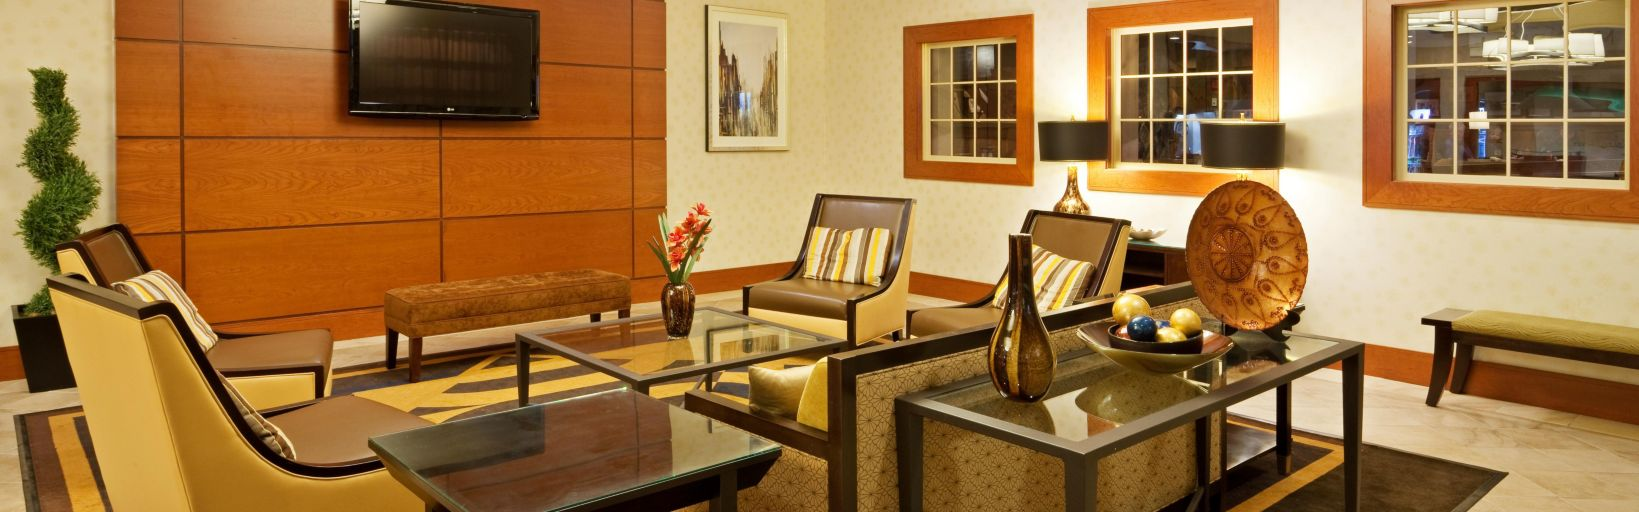 The Holiday Inn Mansfield Foxboro Welcomes You